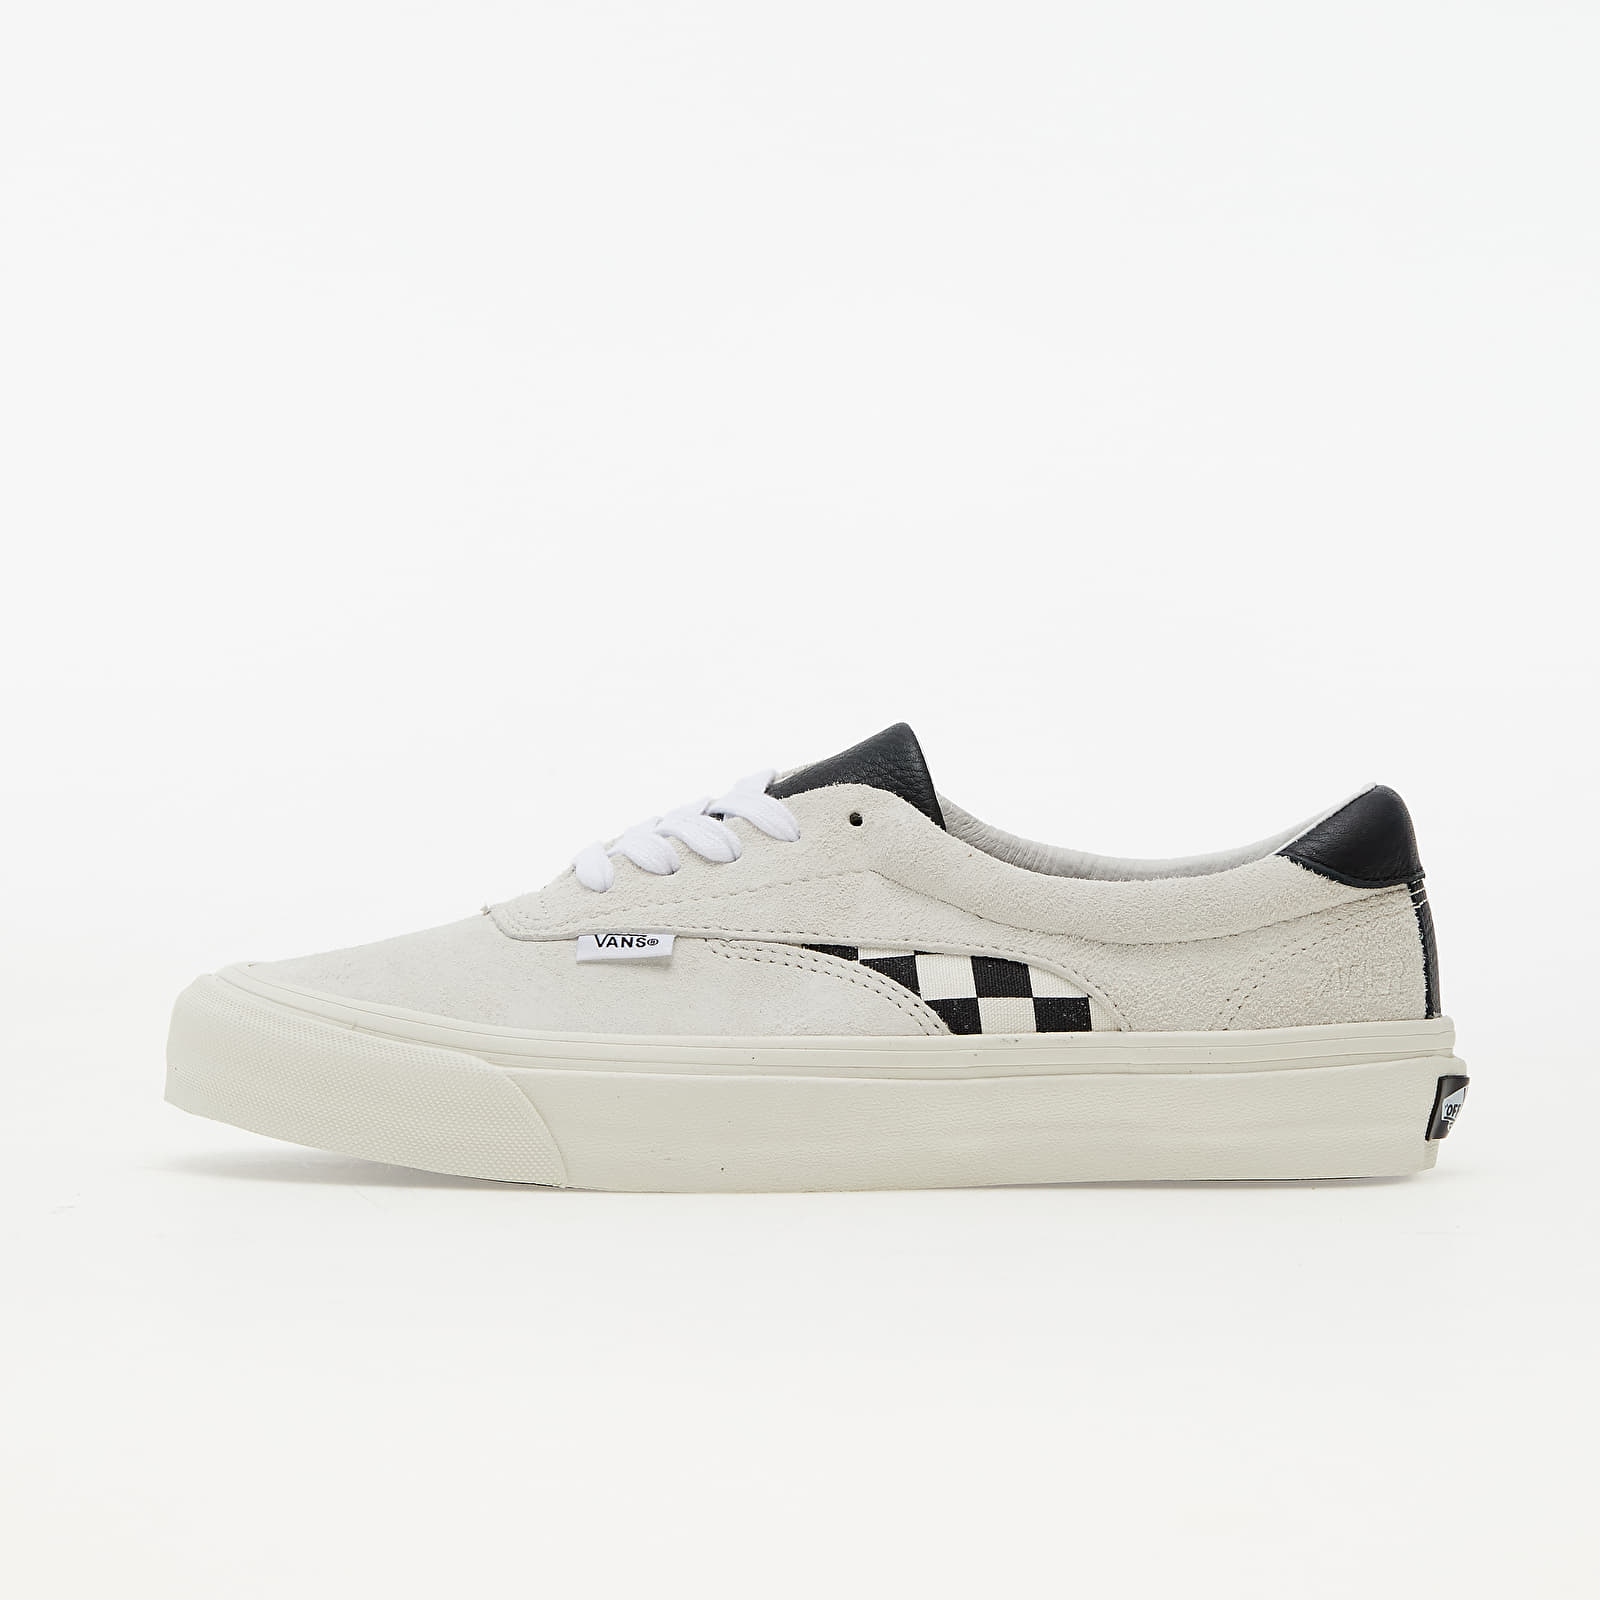 Vans Acer NI SP (Staple) Marshmalow/ Black VN0A4UWY17S1